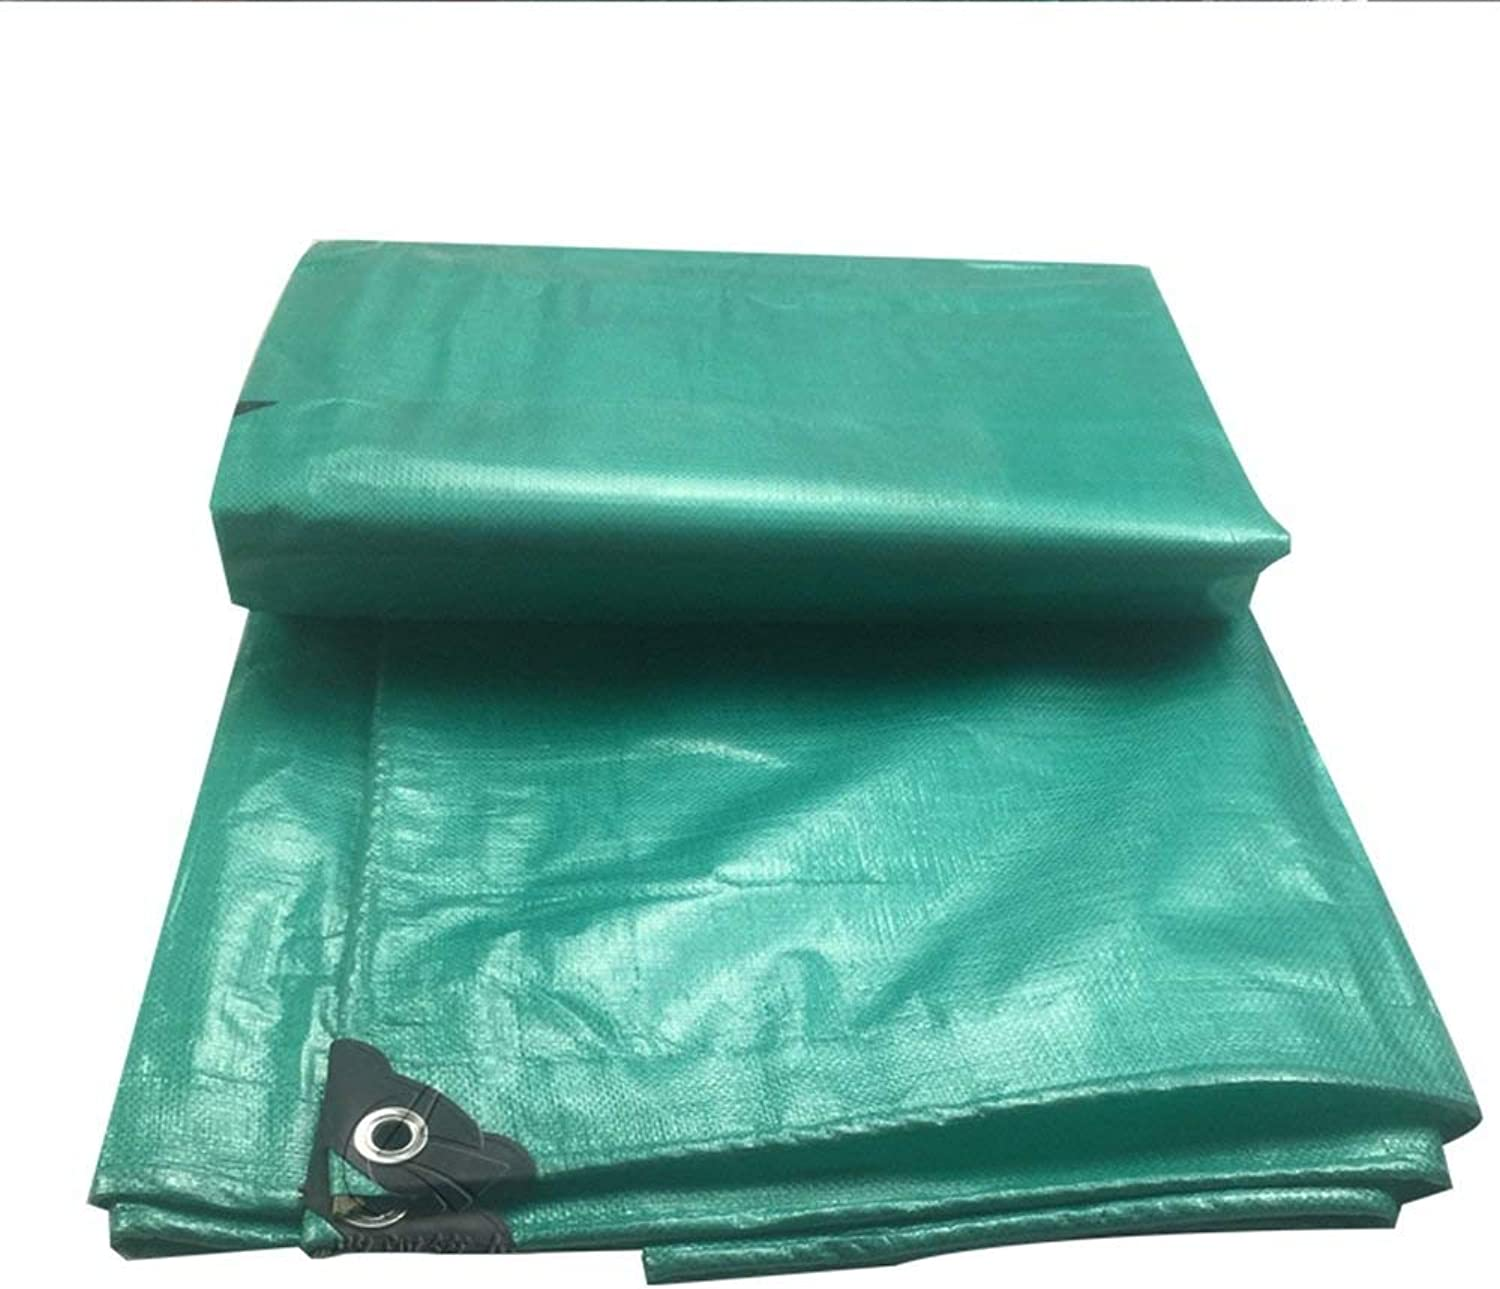 ATR Tent Tarps Green Waterproof Tarps Thick Rainhorses Fall Camping Camping Tents blueee-Perfect for Backpacking, Camping, Shelter, Shade, Ground Cover 180g   m\ -0.38mm for Outdoor